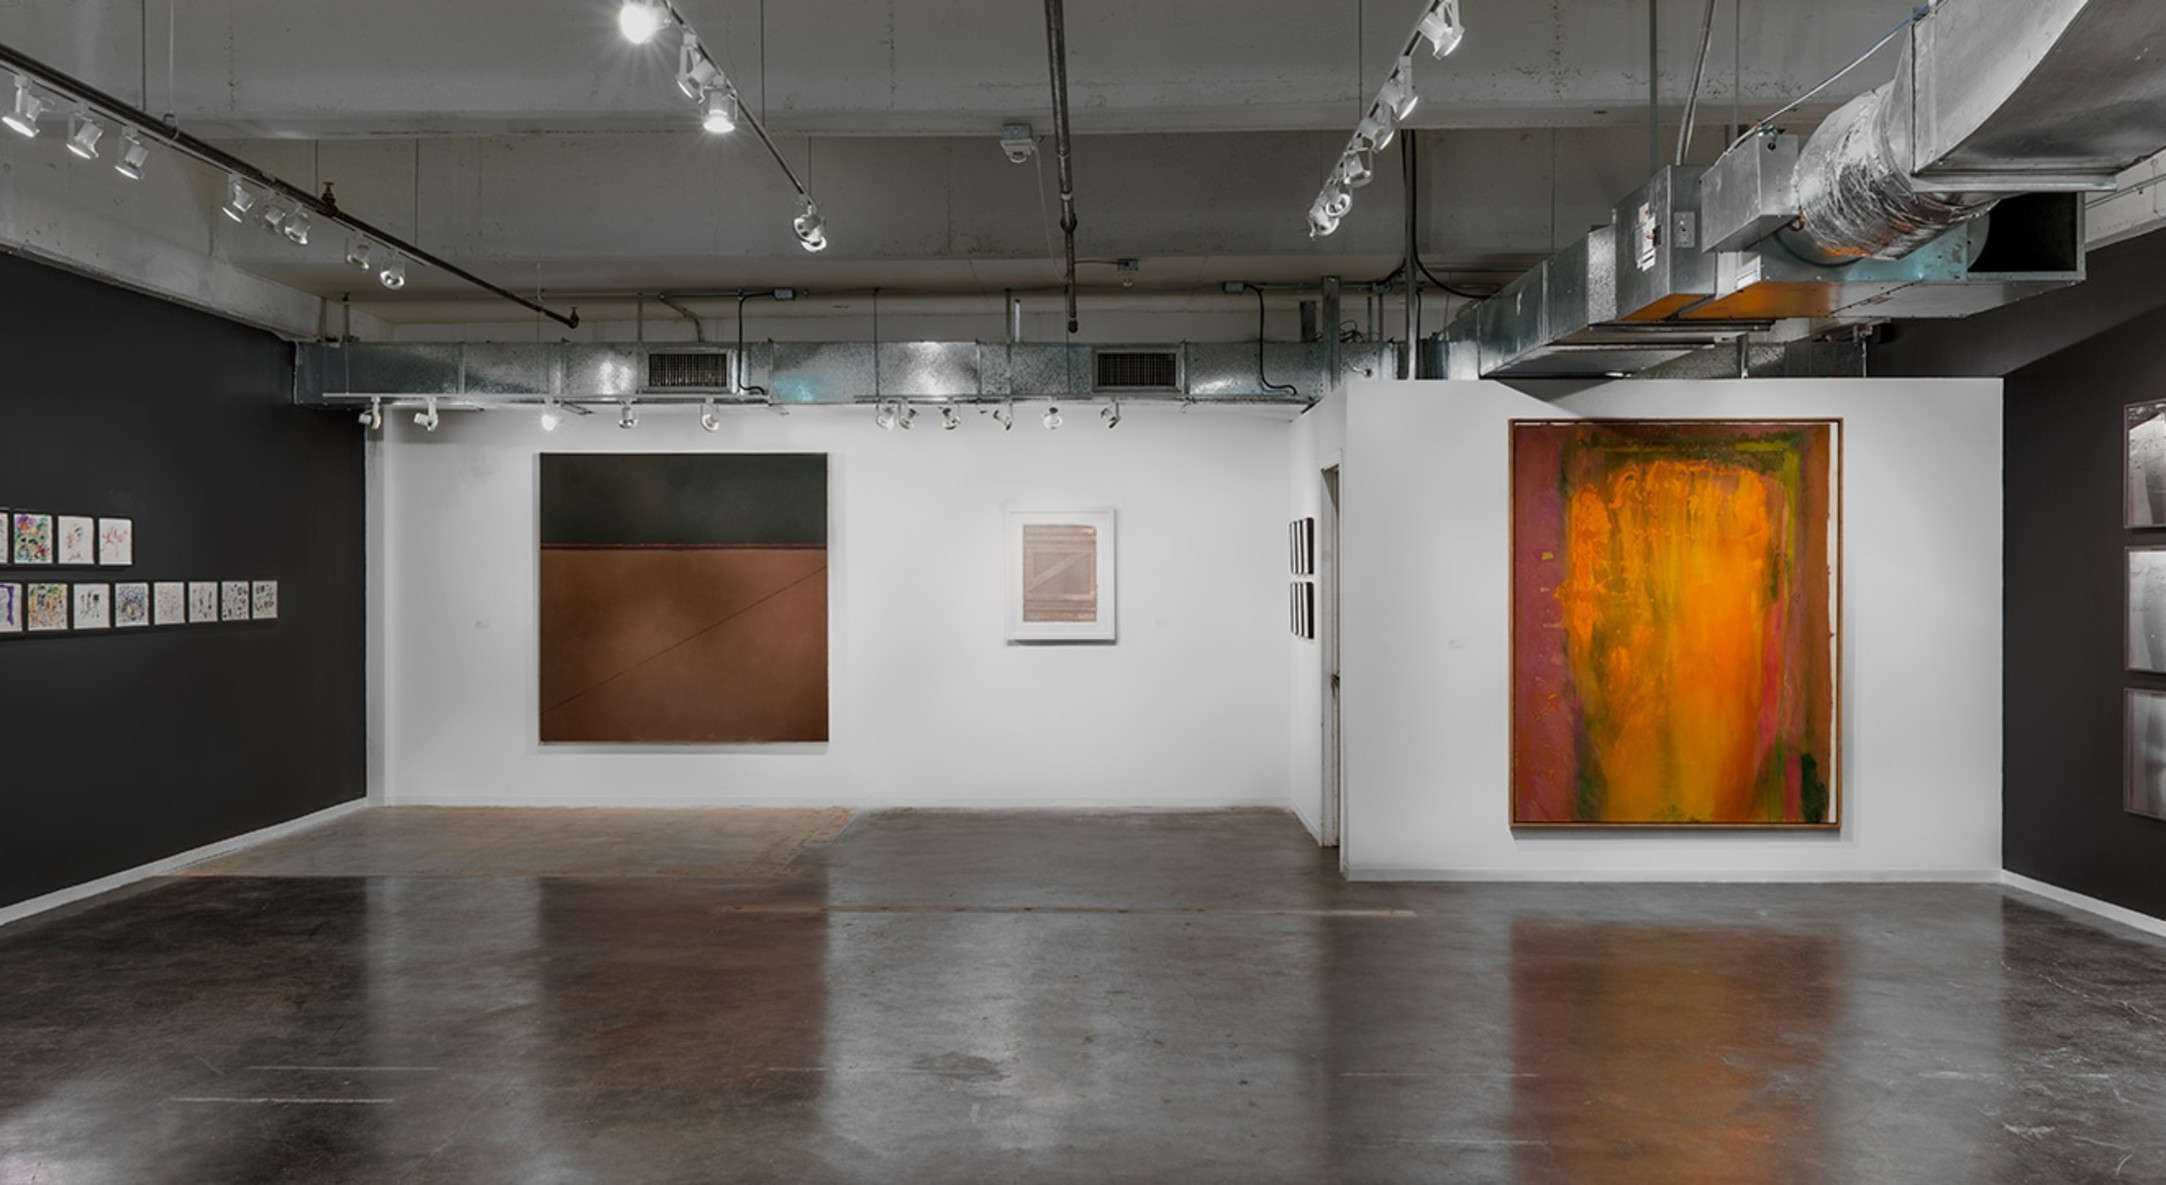 Installation view of Hales Gallery Booth at Dallas Art Fair 2017